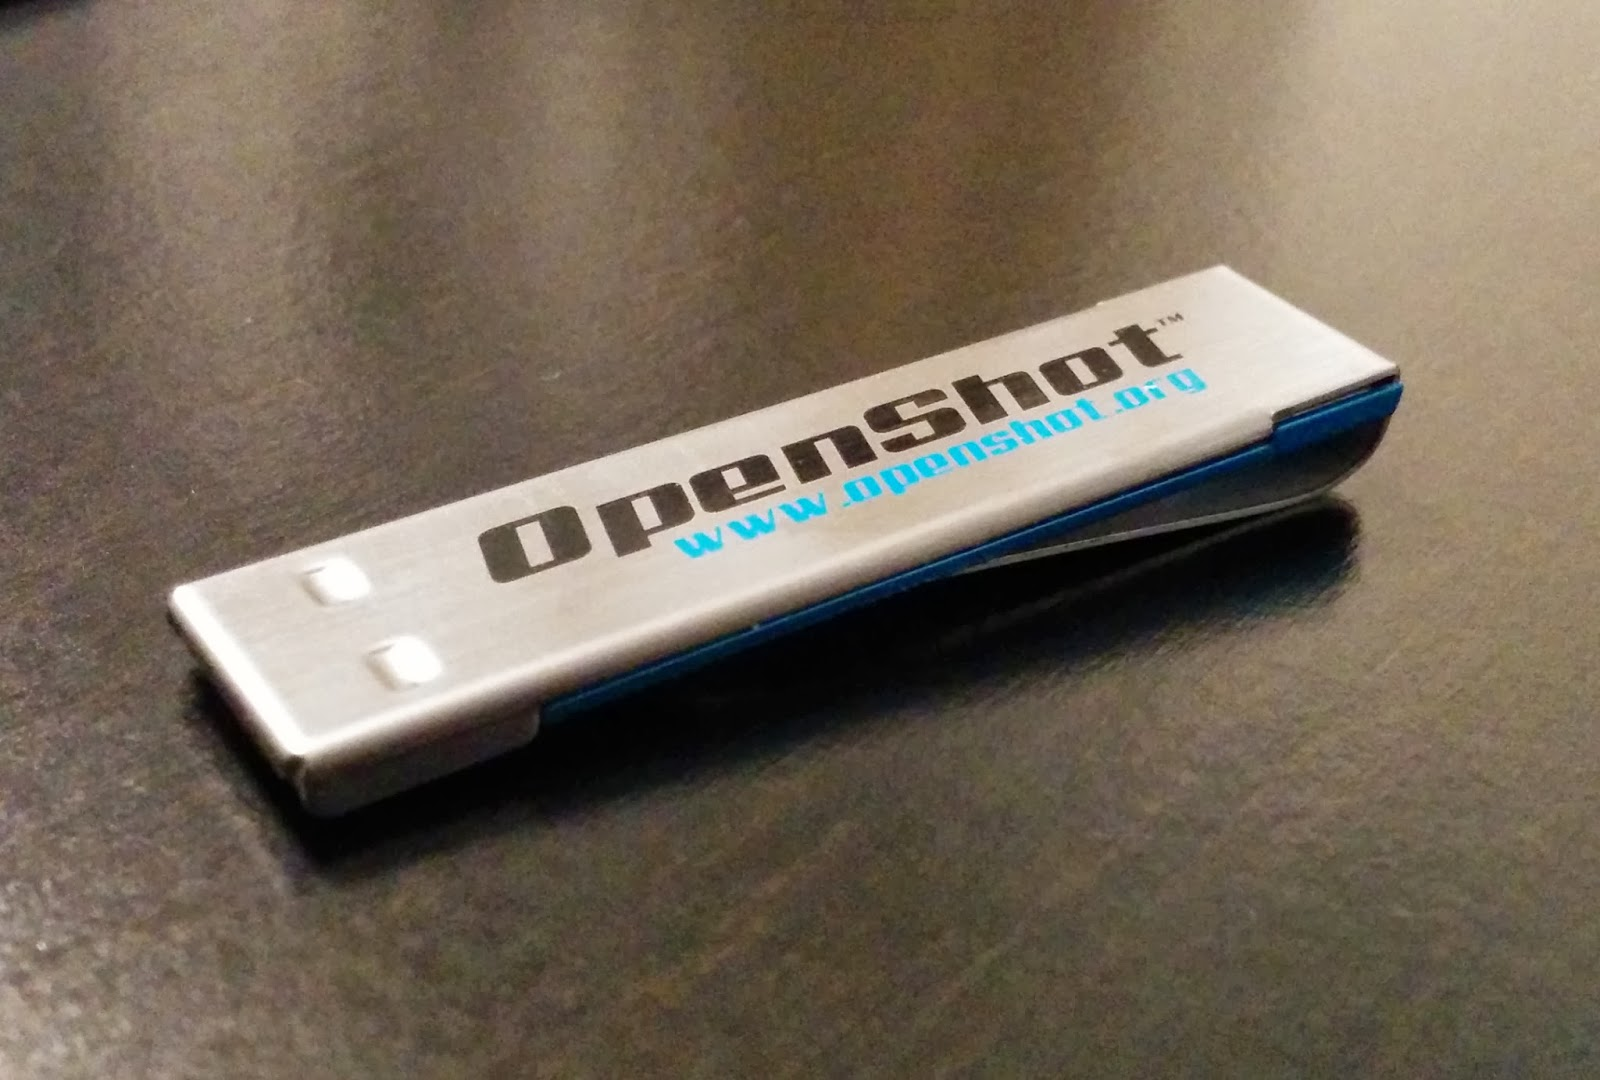 8 GB USB Flash Drive for OpenShot